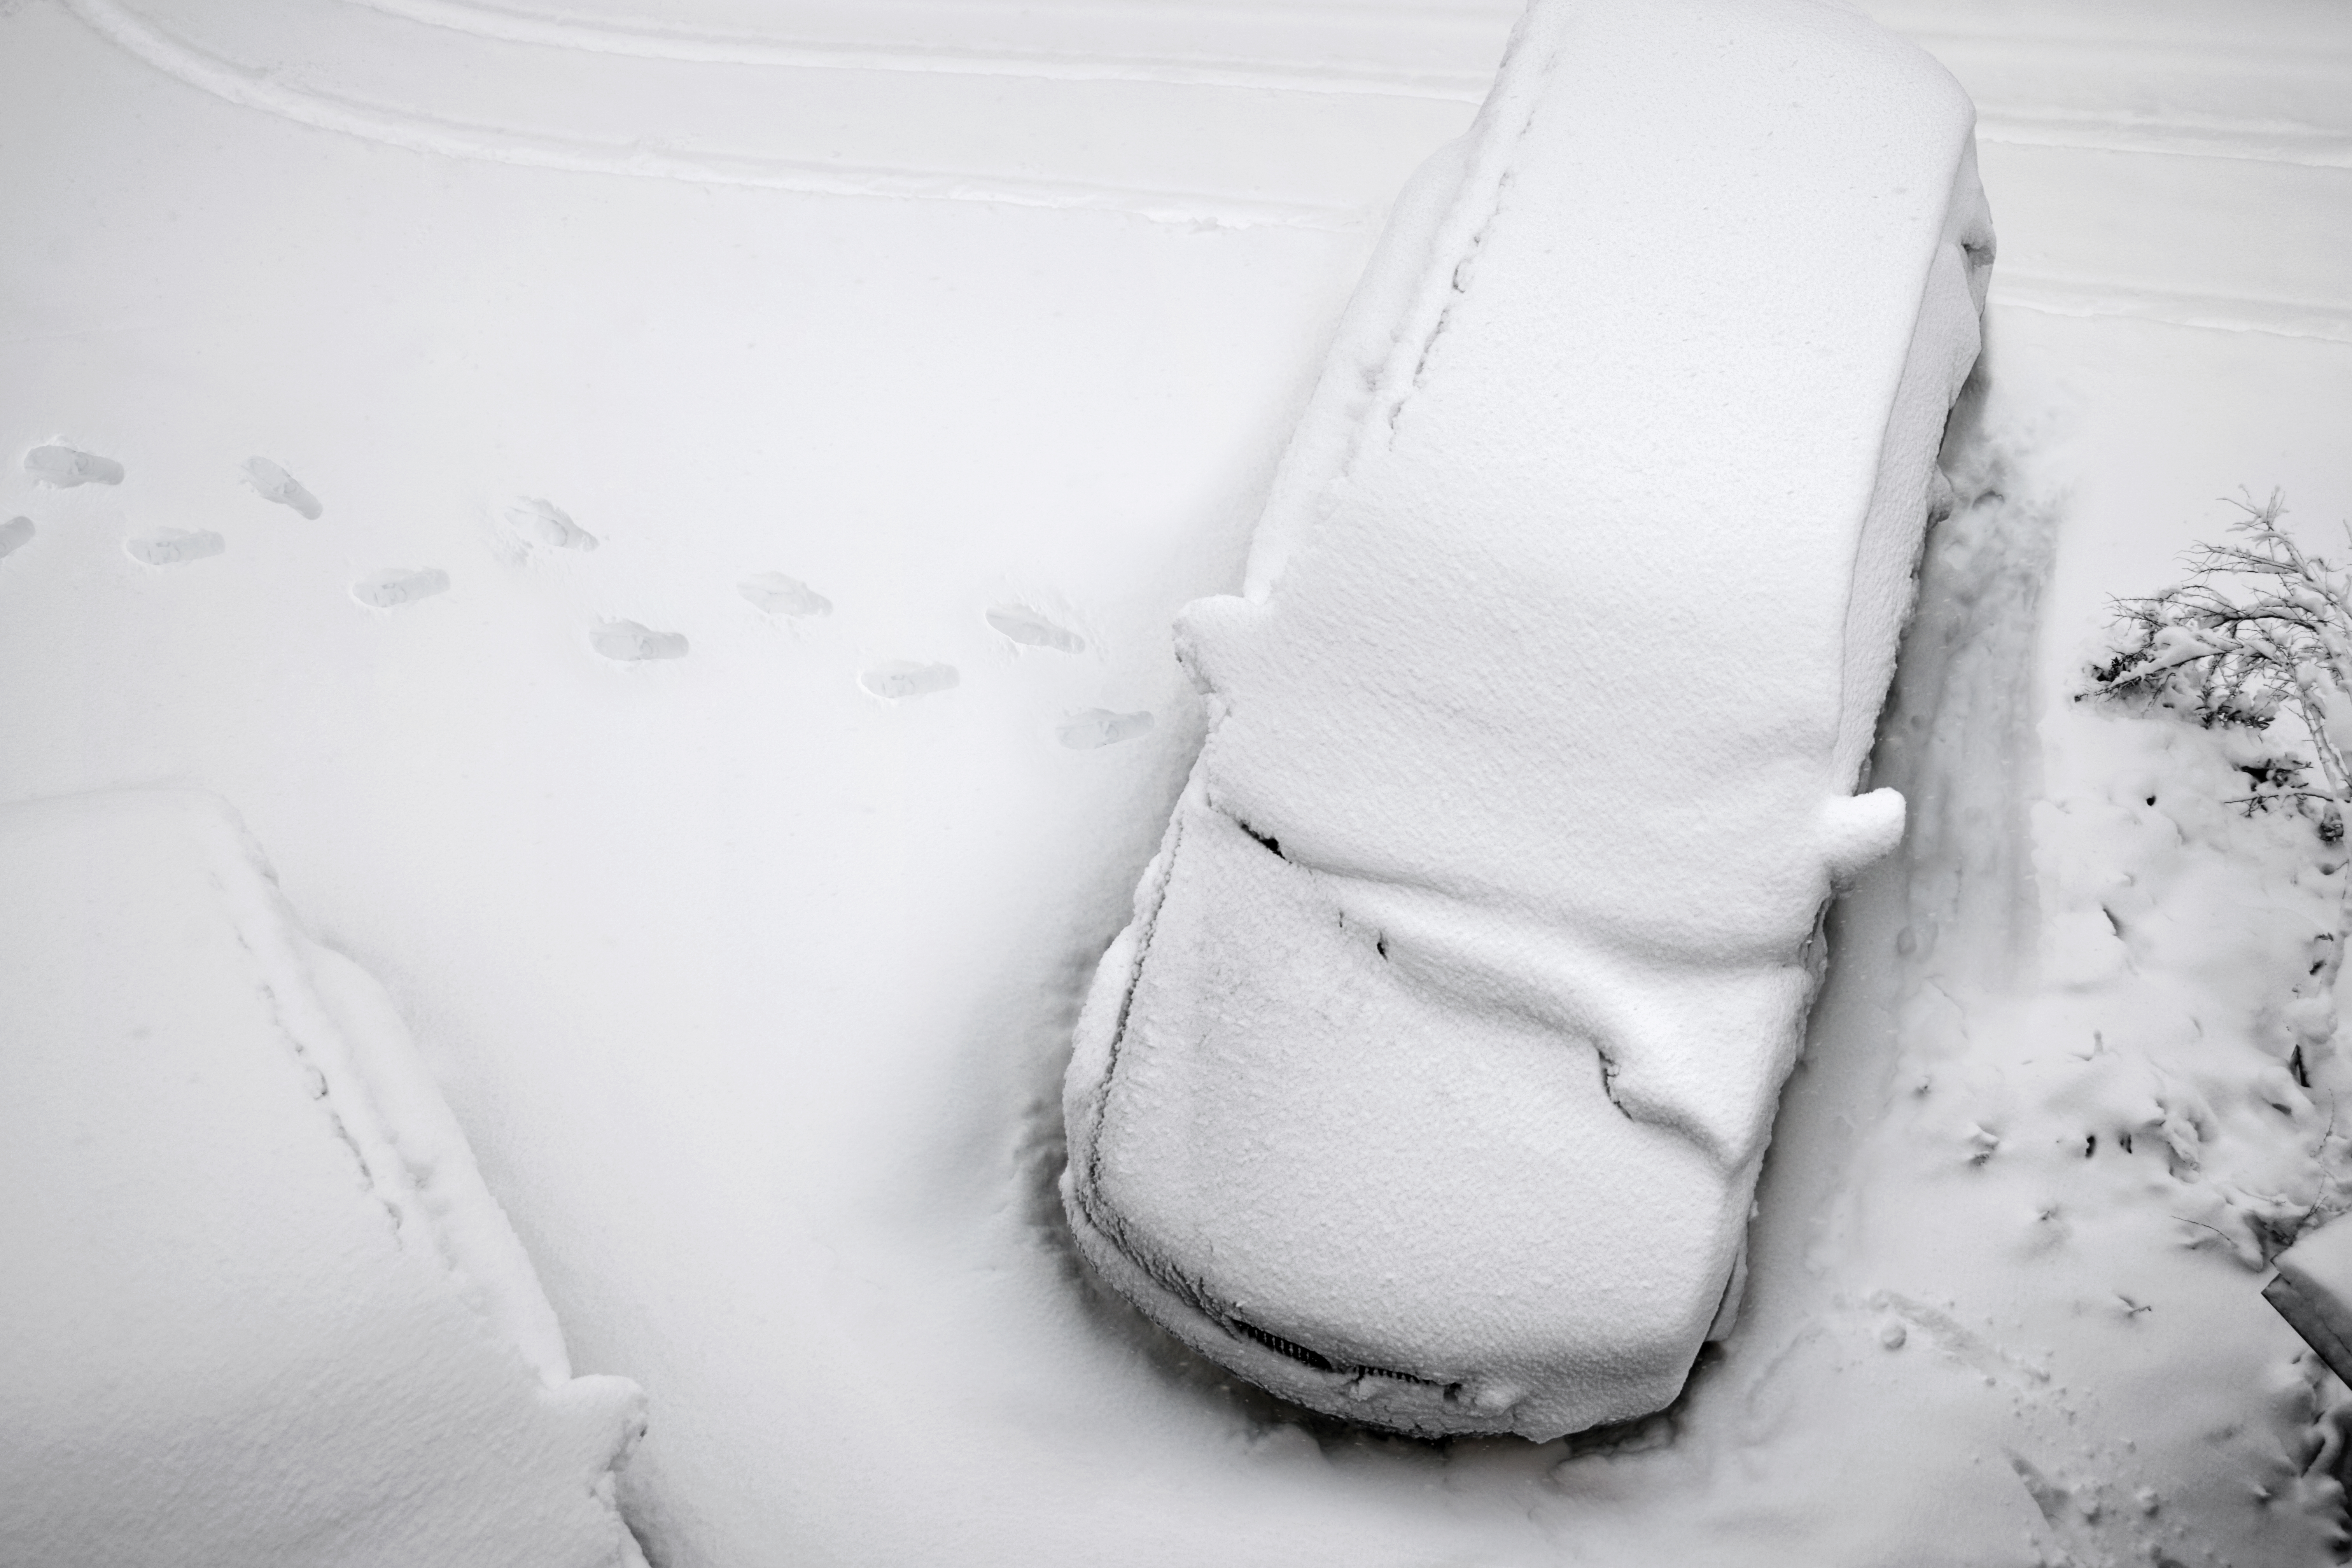 A car abandoned in the snow with foot prints leading away from the abandoned vehicle.